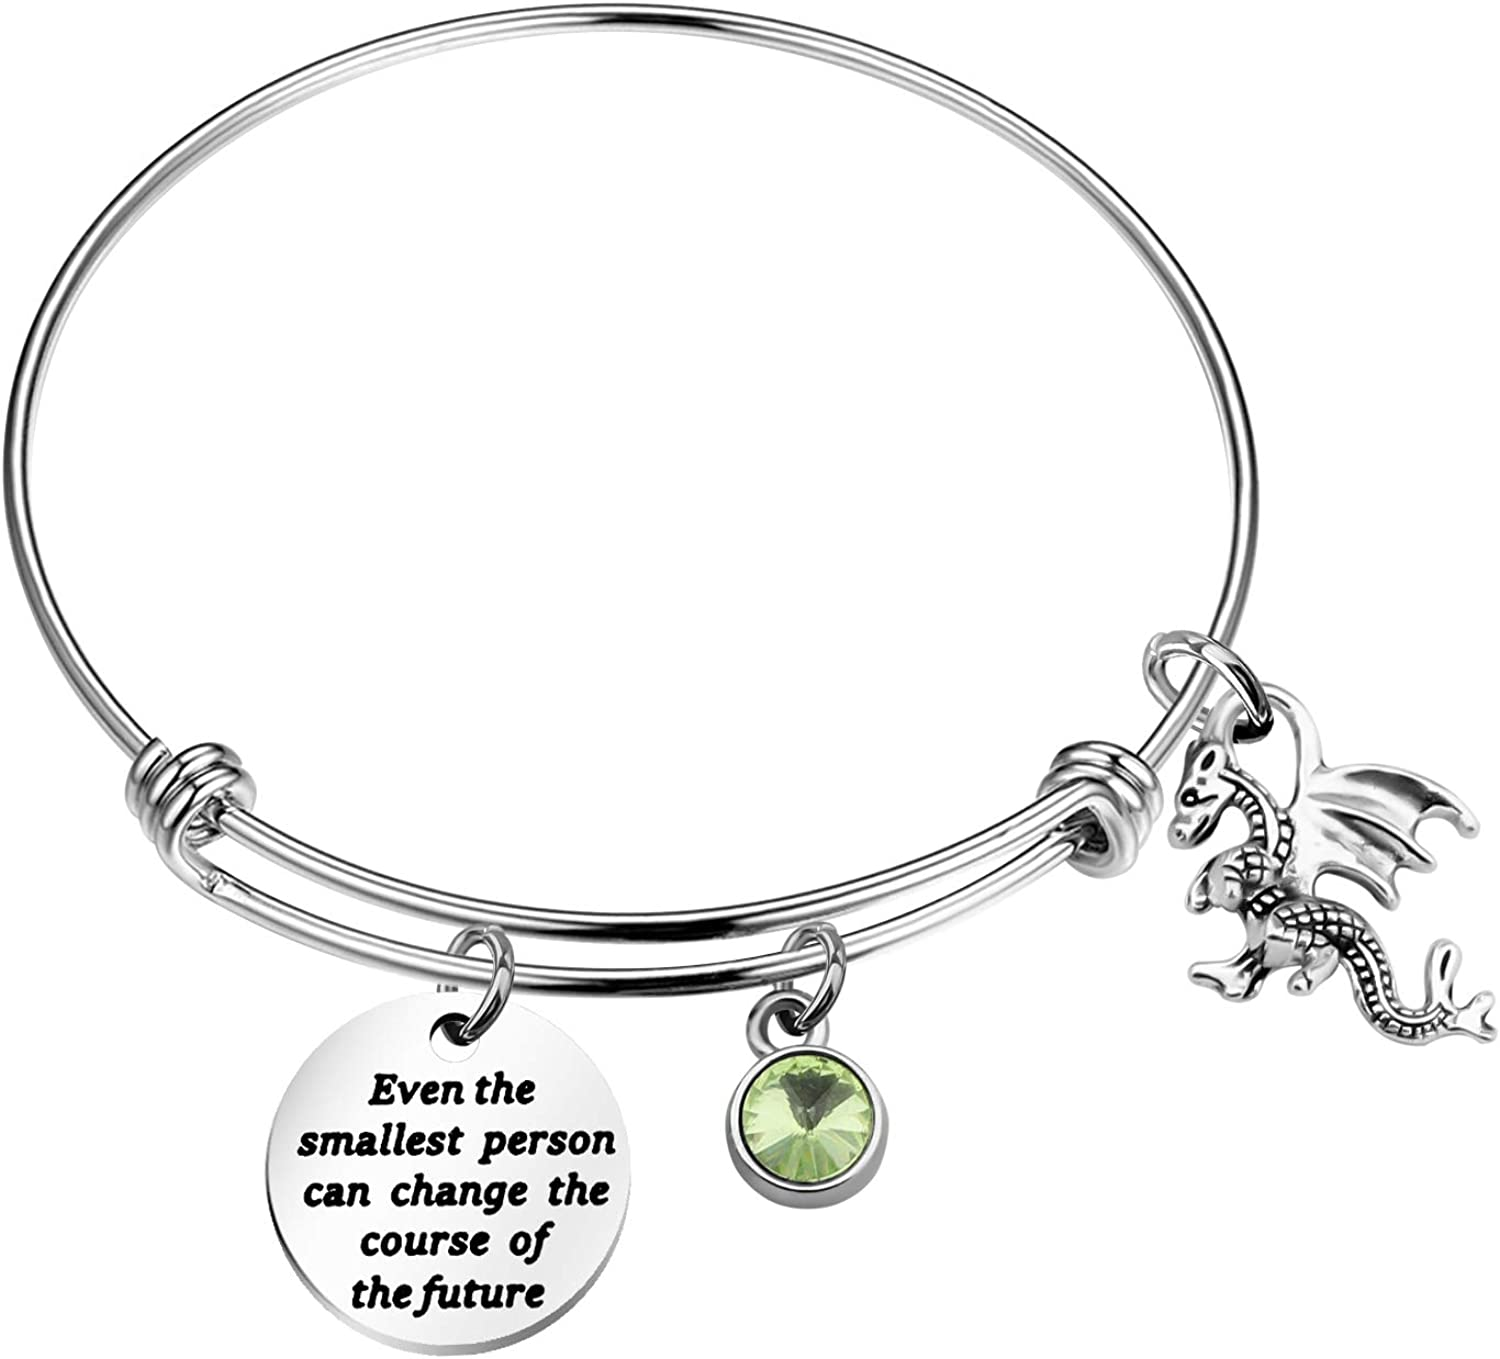 Tolkien Max 72% OFF Quote Max 46% OFF Bracelet Keychain Even Person The Cha Smallest Can